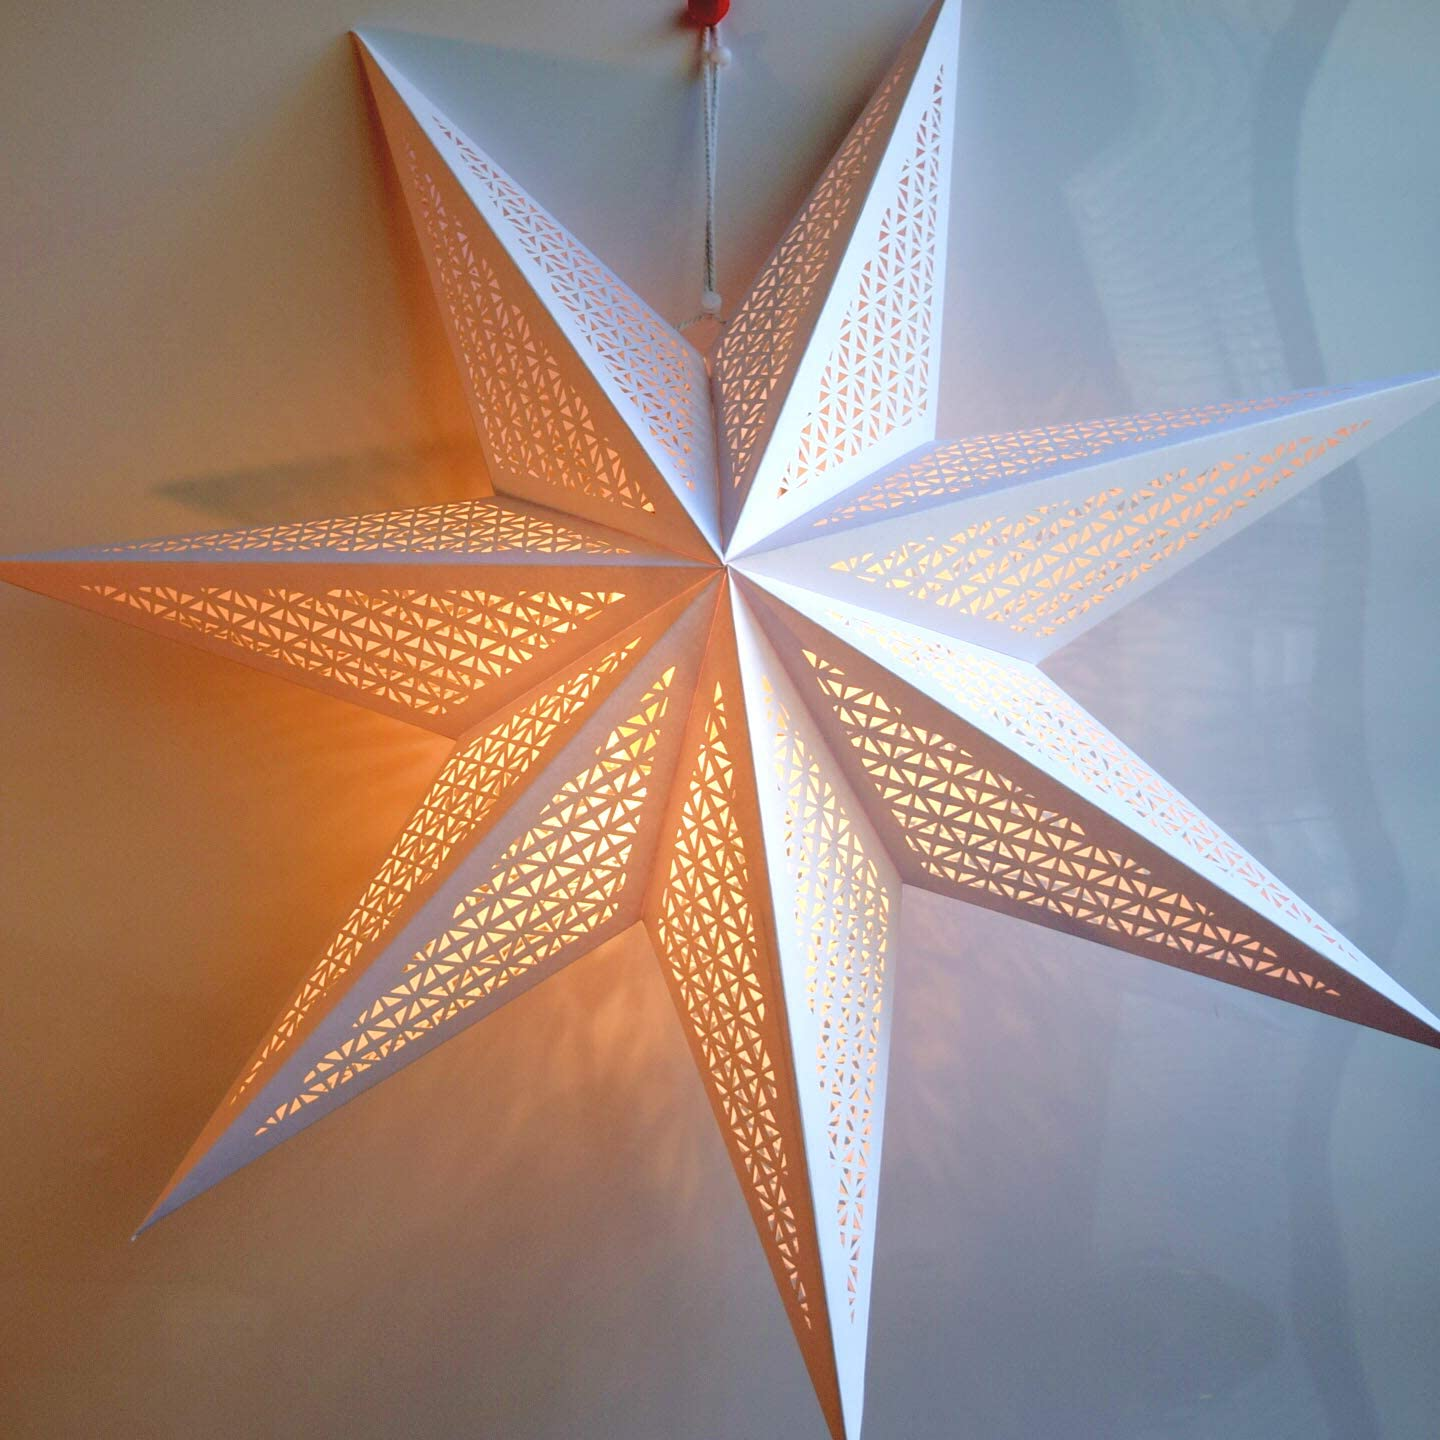 Paper Star Lantern Decoration (Cosmic White 7-Point Lighted Star) - Perfect for Weddings, Christmas Holiday, Birthday Party Celebration & Home Decor